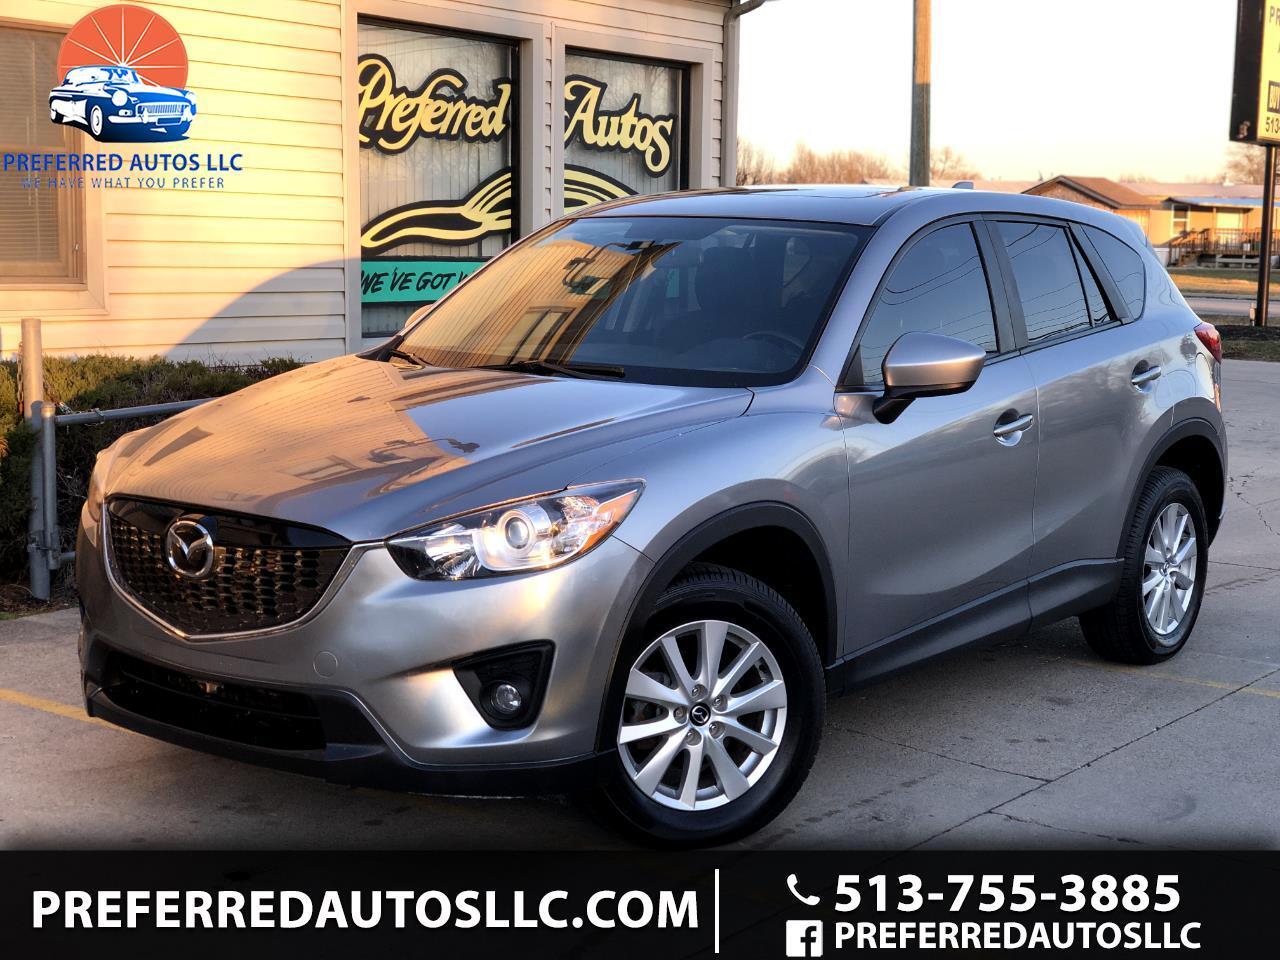 Mazda West Chester >> Used 2014 Mazda CX-5 AWD 4dr Auto Touring for Sale in West Chester OH 45069 Preferred Autos LLC